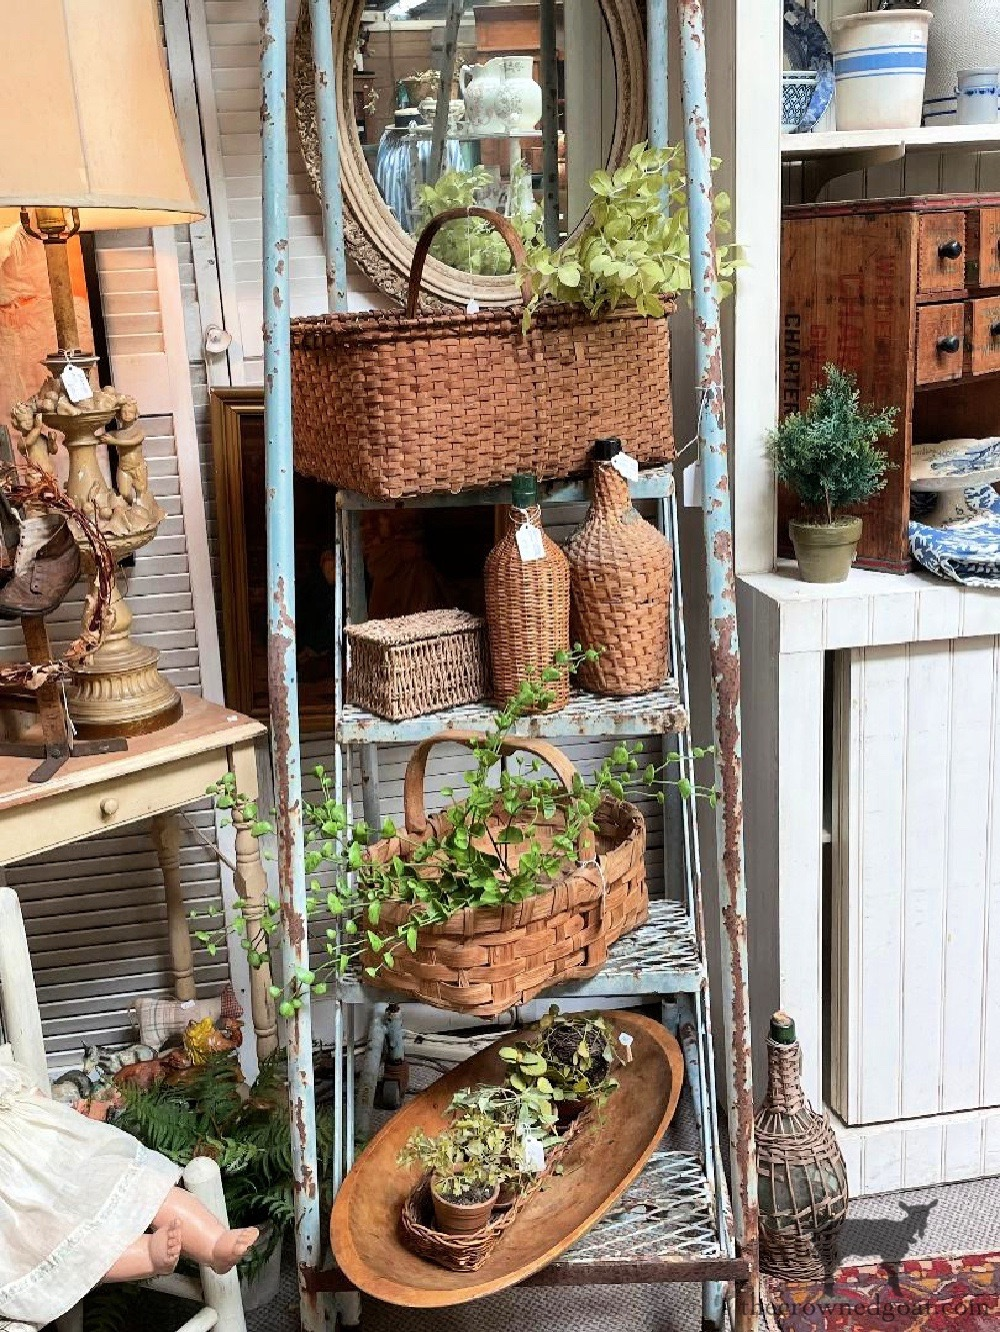 Summer Yard Sales and Latest Finds From Renningers-The Crowned Goat